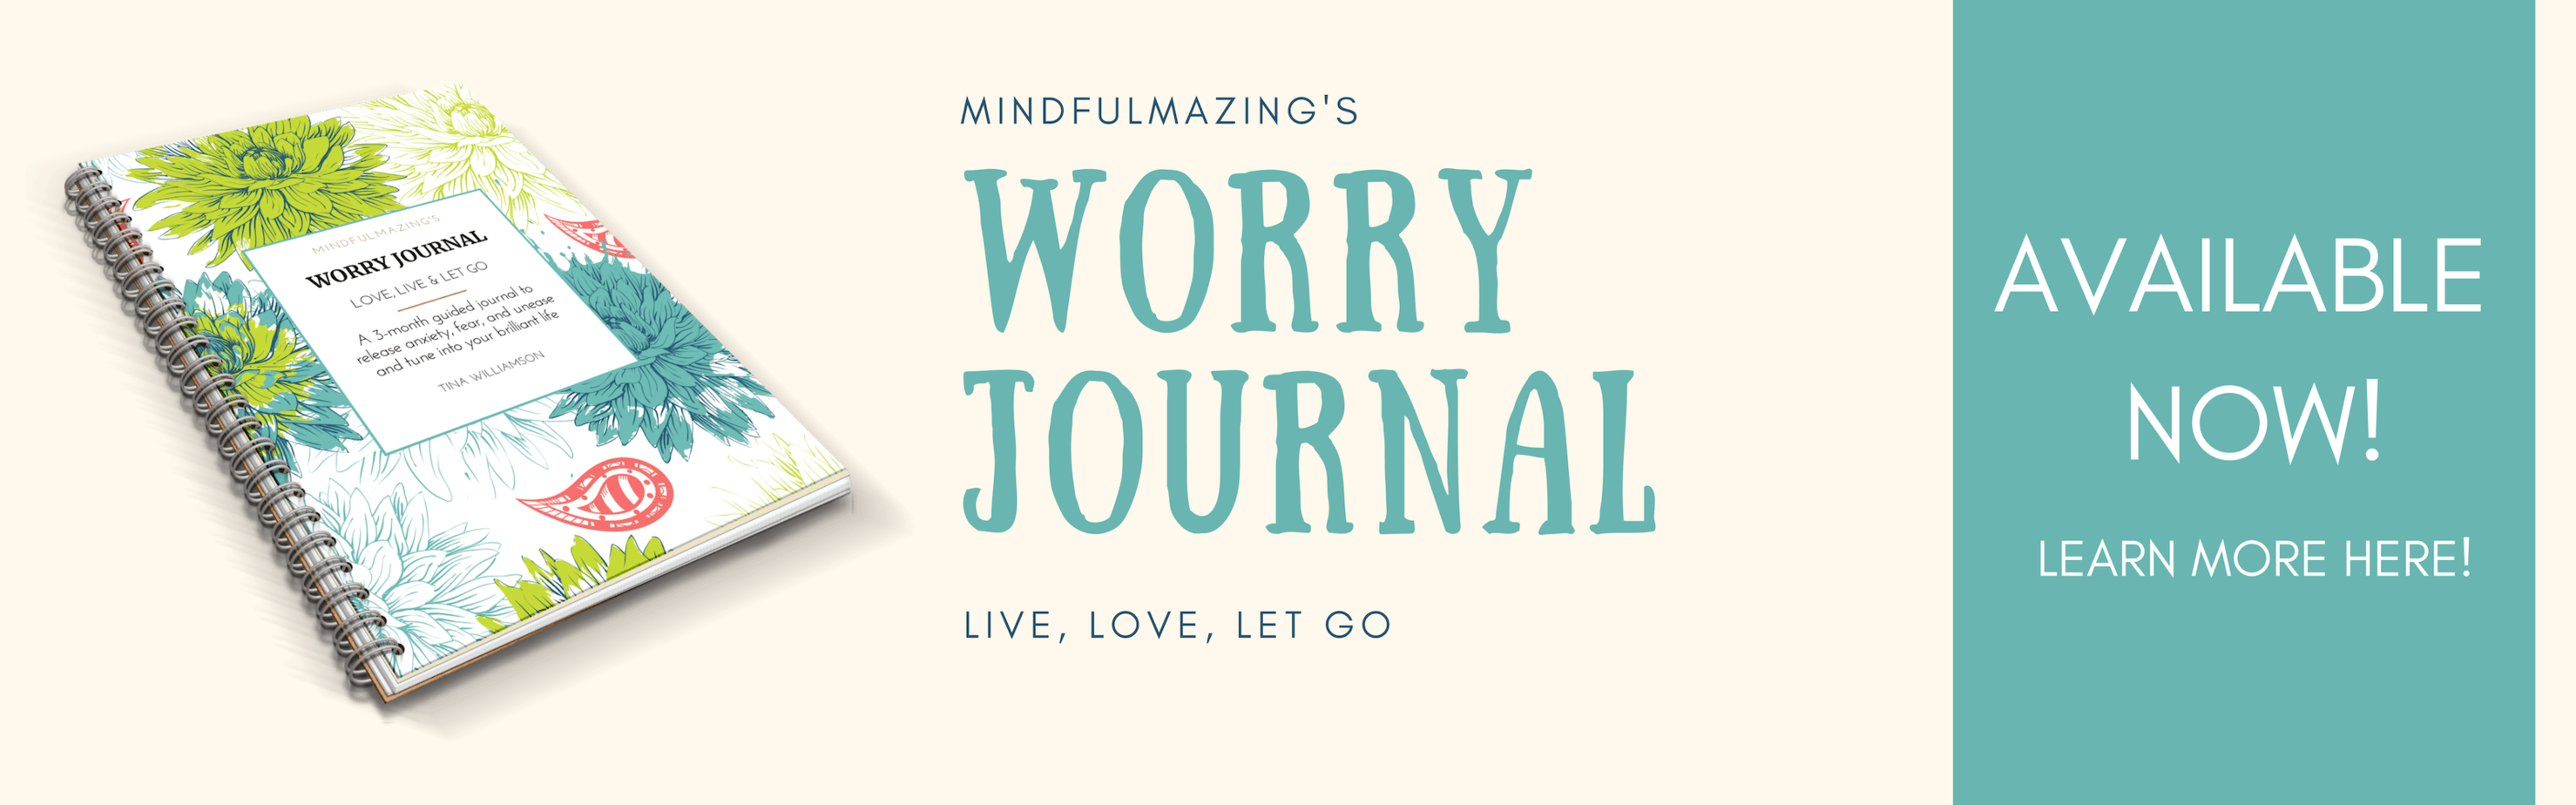 A small pebble of worry often snowballs into a boulder of anxiety, stress and mental health issues. Use this genius worry journal to stop anxious, irrational thoughts and break free of excessive worry. You can train your brain to relax, stay calm and see life from a more balanced, less fearful perspective. Learn how to stop worrying quickly with this one powerful habit. #howtoworryless #anxiety #stopworryingquotes #worry #howtonotworry #worryjournal